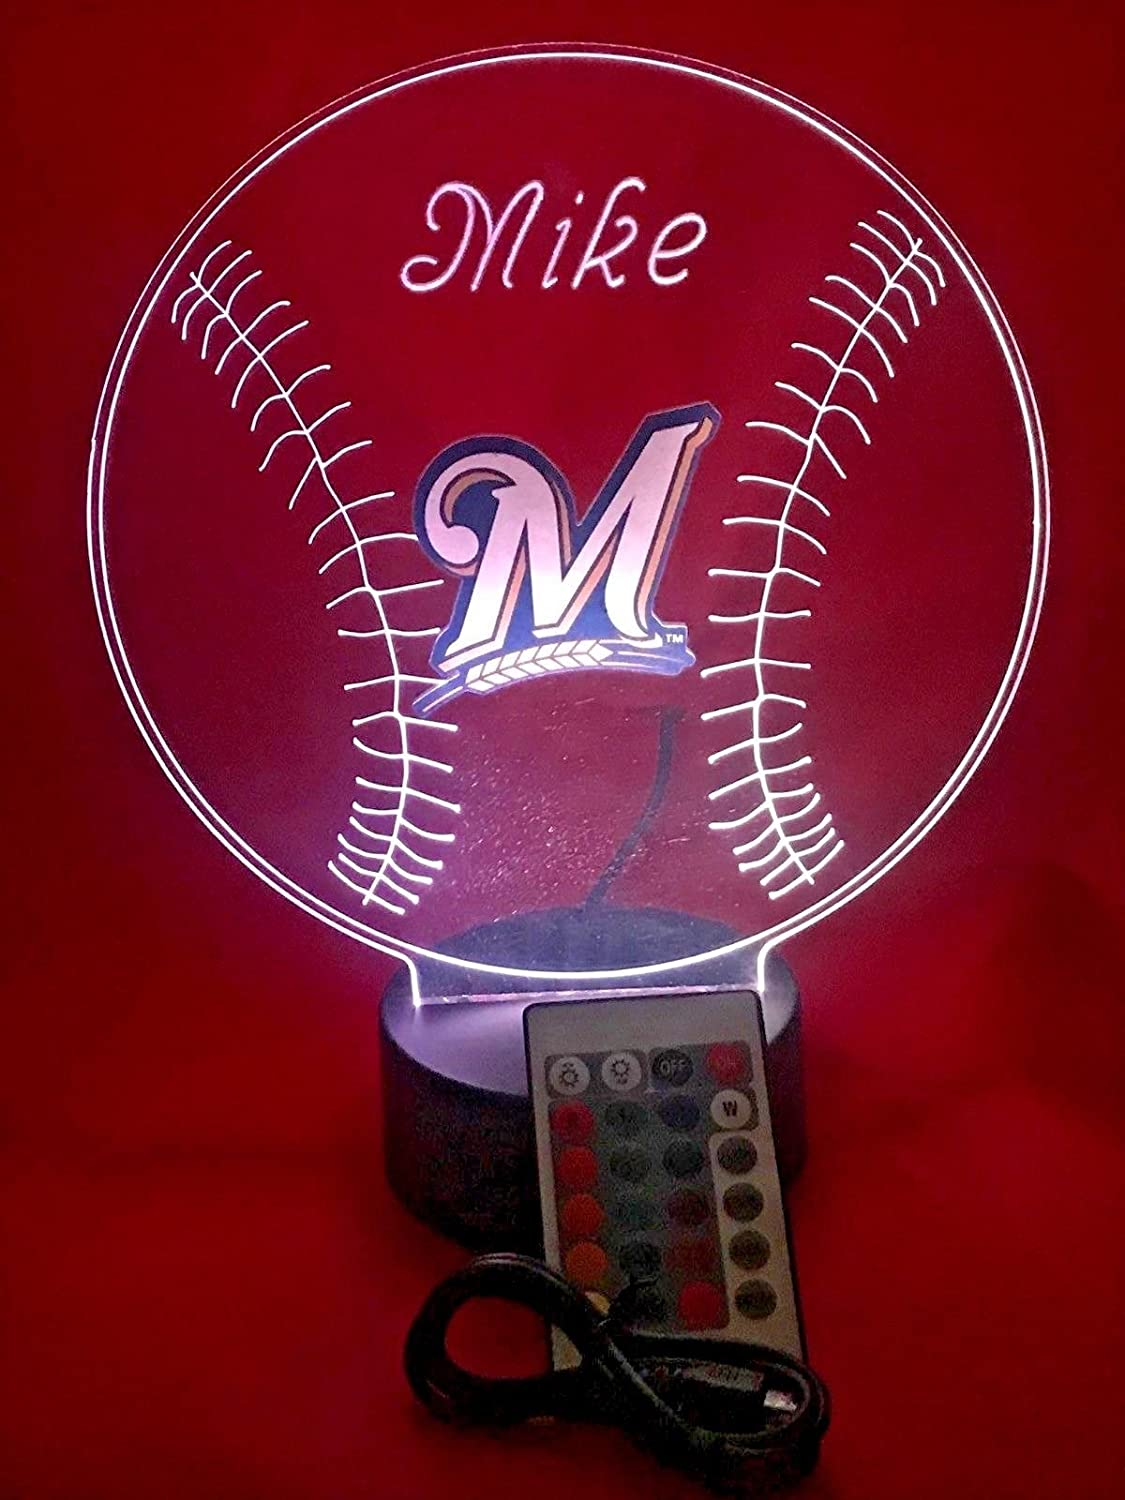 Brewers MLB Light Up Lamp LED MLB Baseball Personalized Light Up Table Lamp, Our Newest Feature – It s Wow, with Remote 16 Color Options, Dimmer, Free Engraving, Great Gift